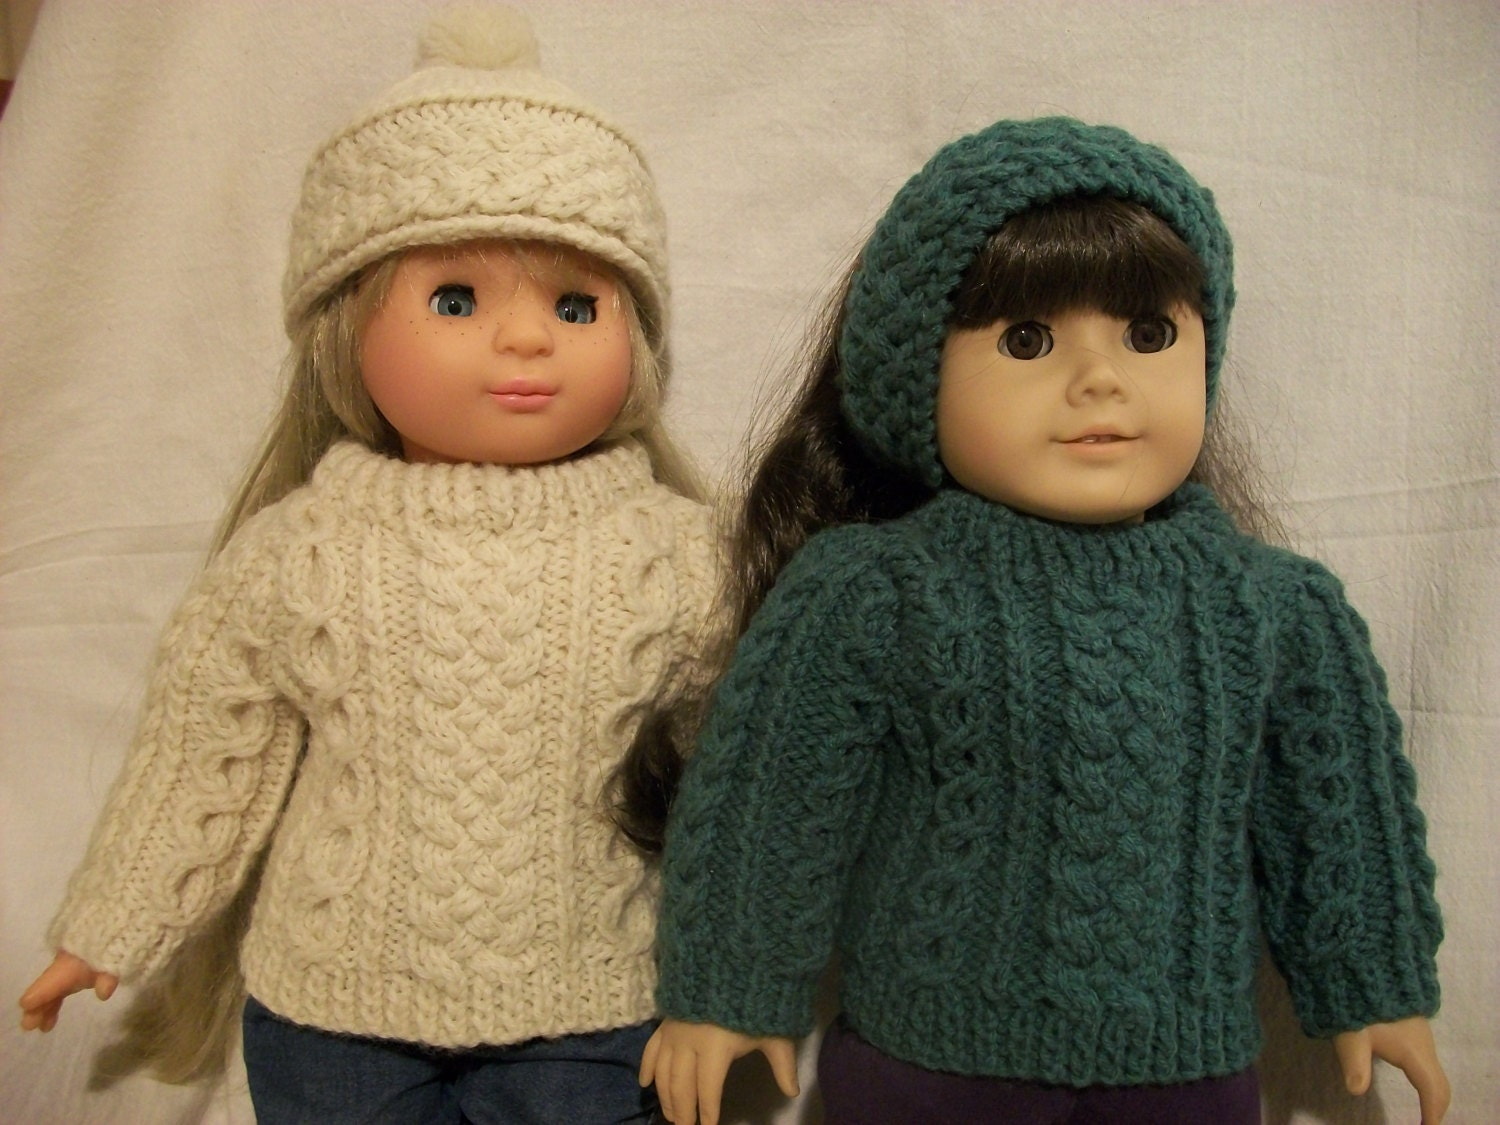 18 Doll Knitting Patterns : 18 inch Doll Knitting Pattern Irish Fisherknit Sweater Hat PDF